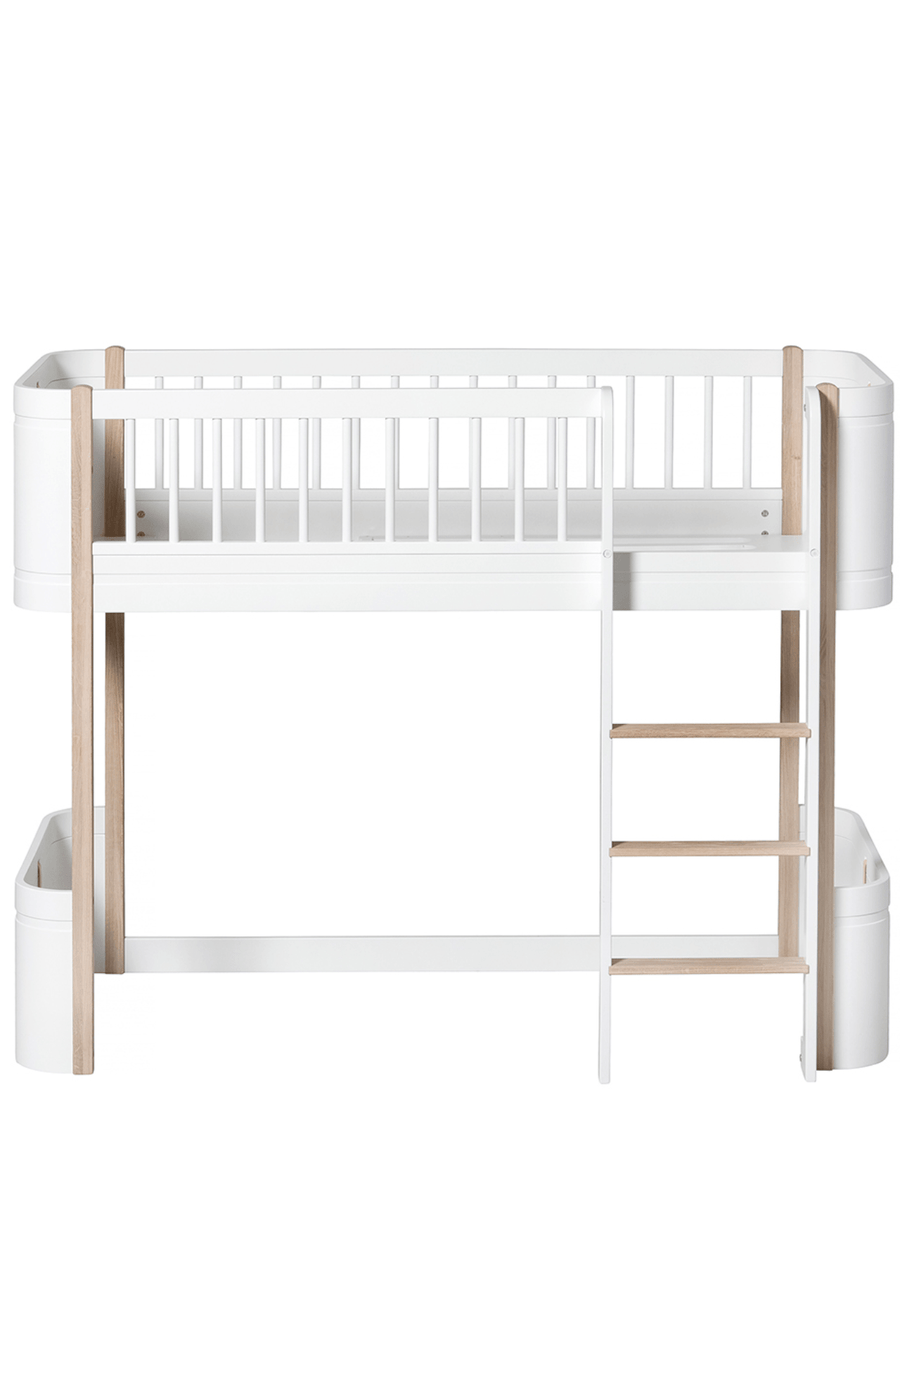 Oliver Furniture Mini+ Low Loft Bed